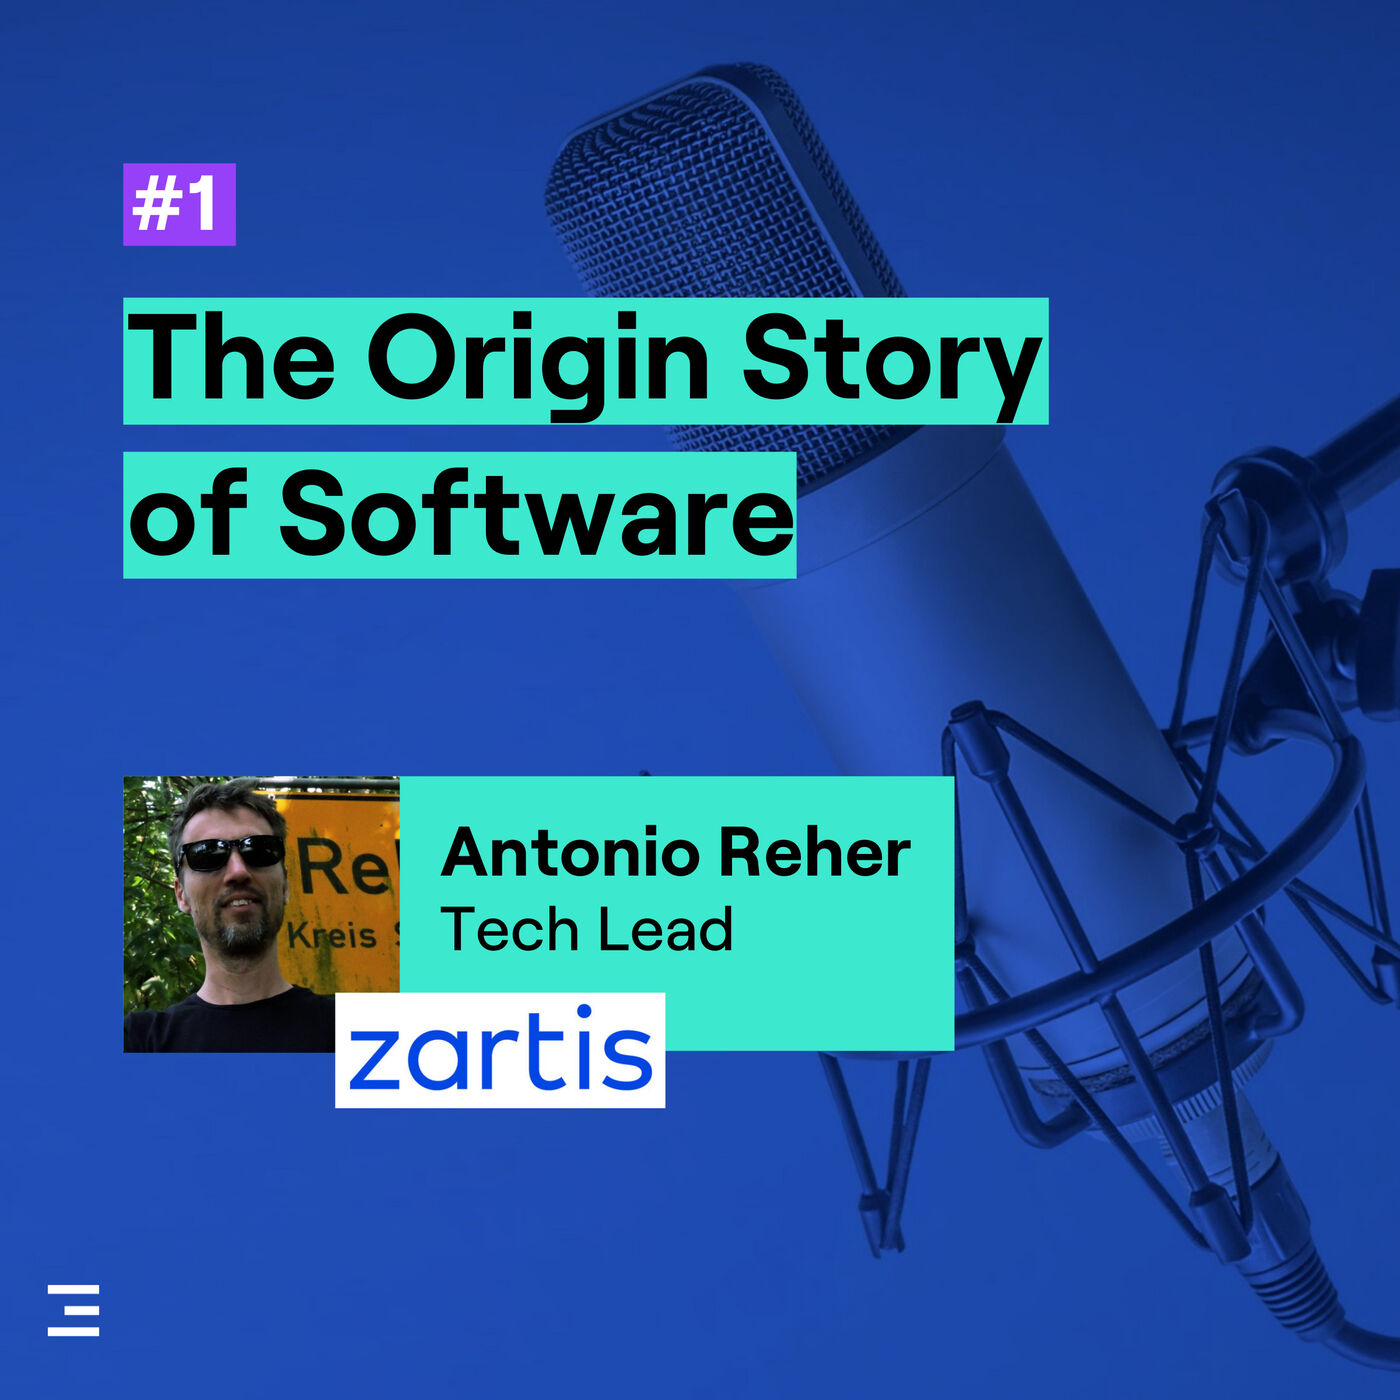 1. The Origin Story of Software